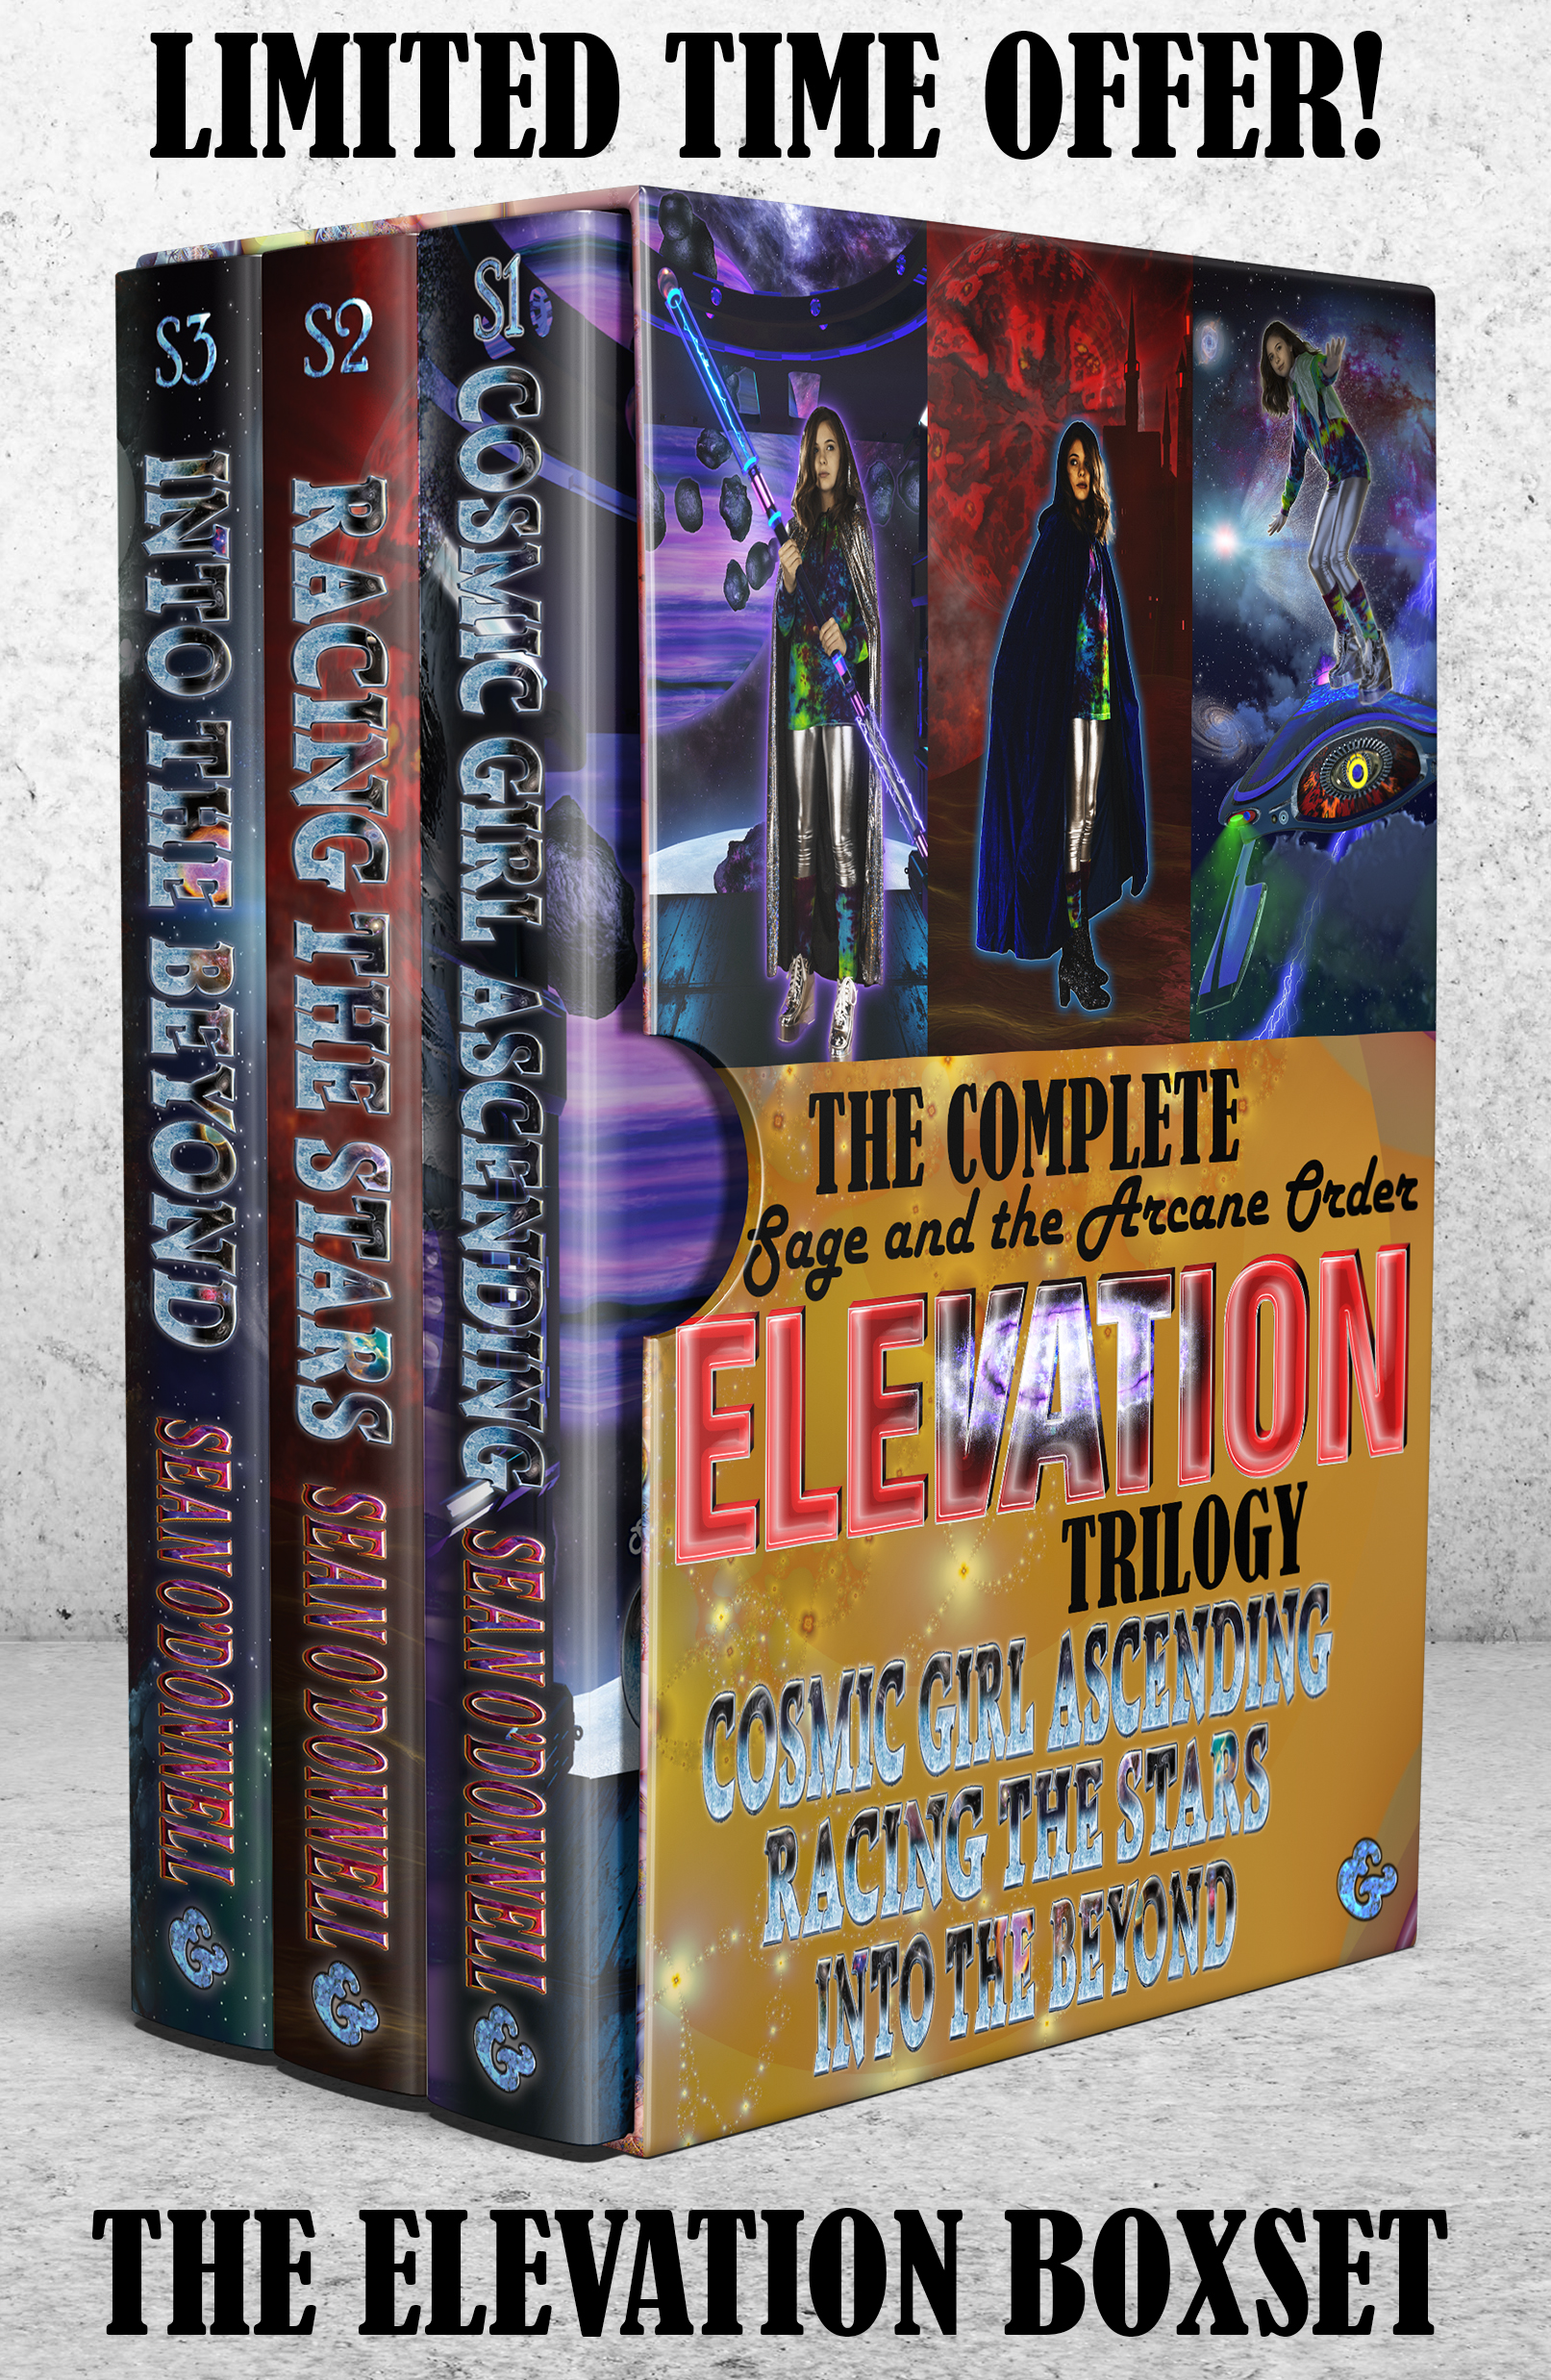 ELEVATION boxset